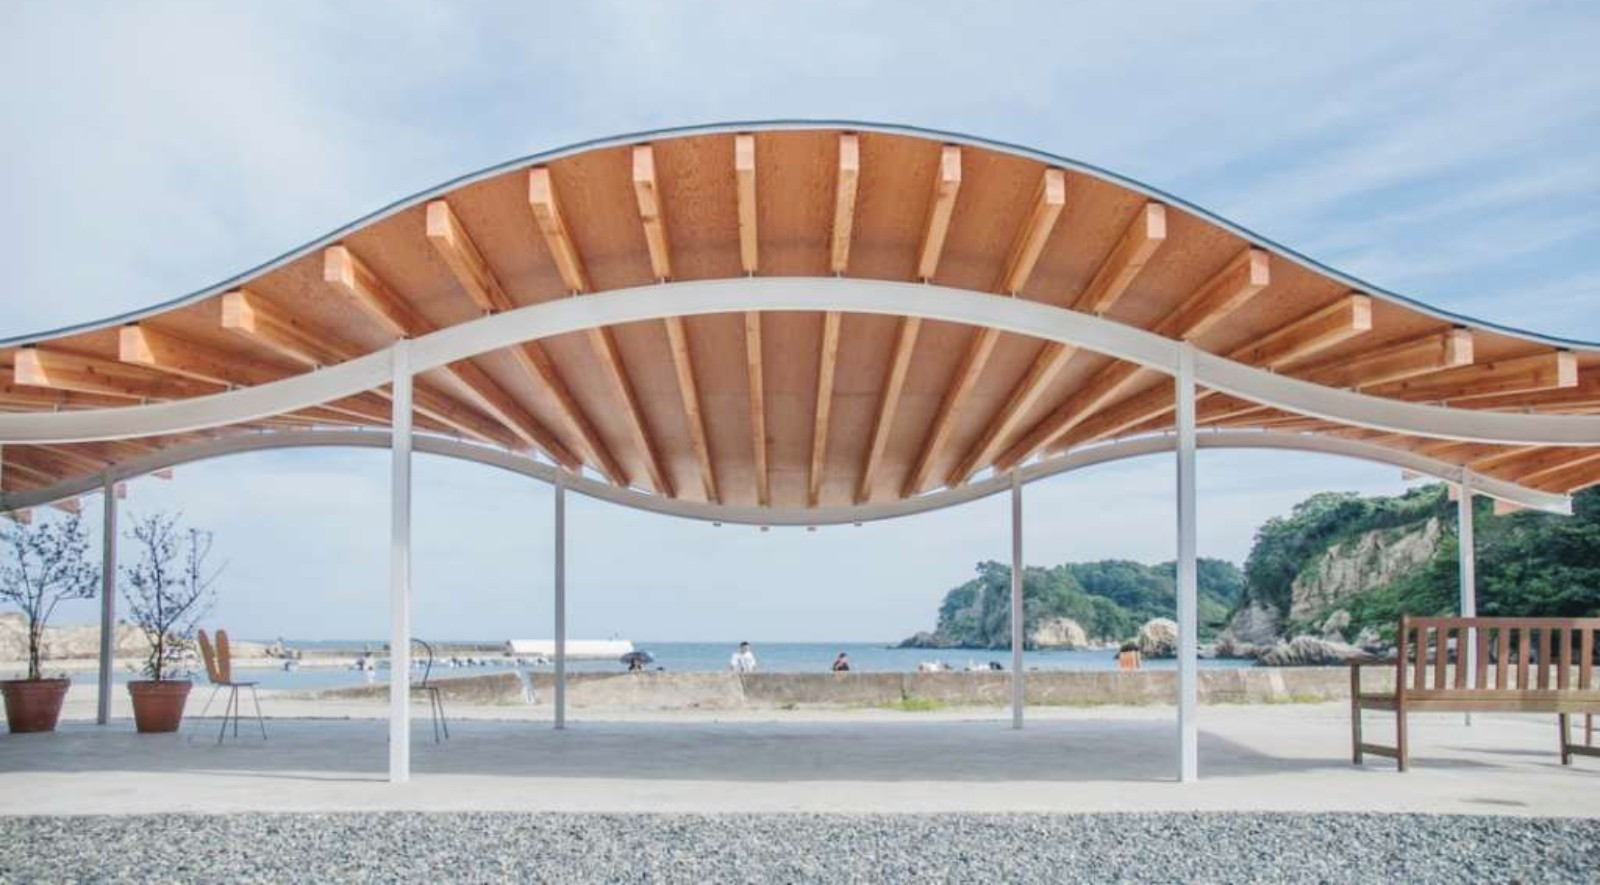 Home for all in tsukihama by sanaa for For architecture